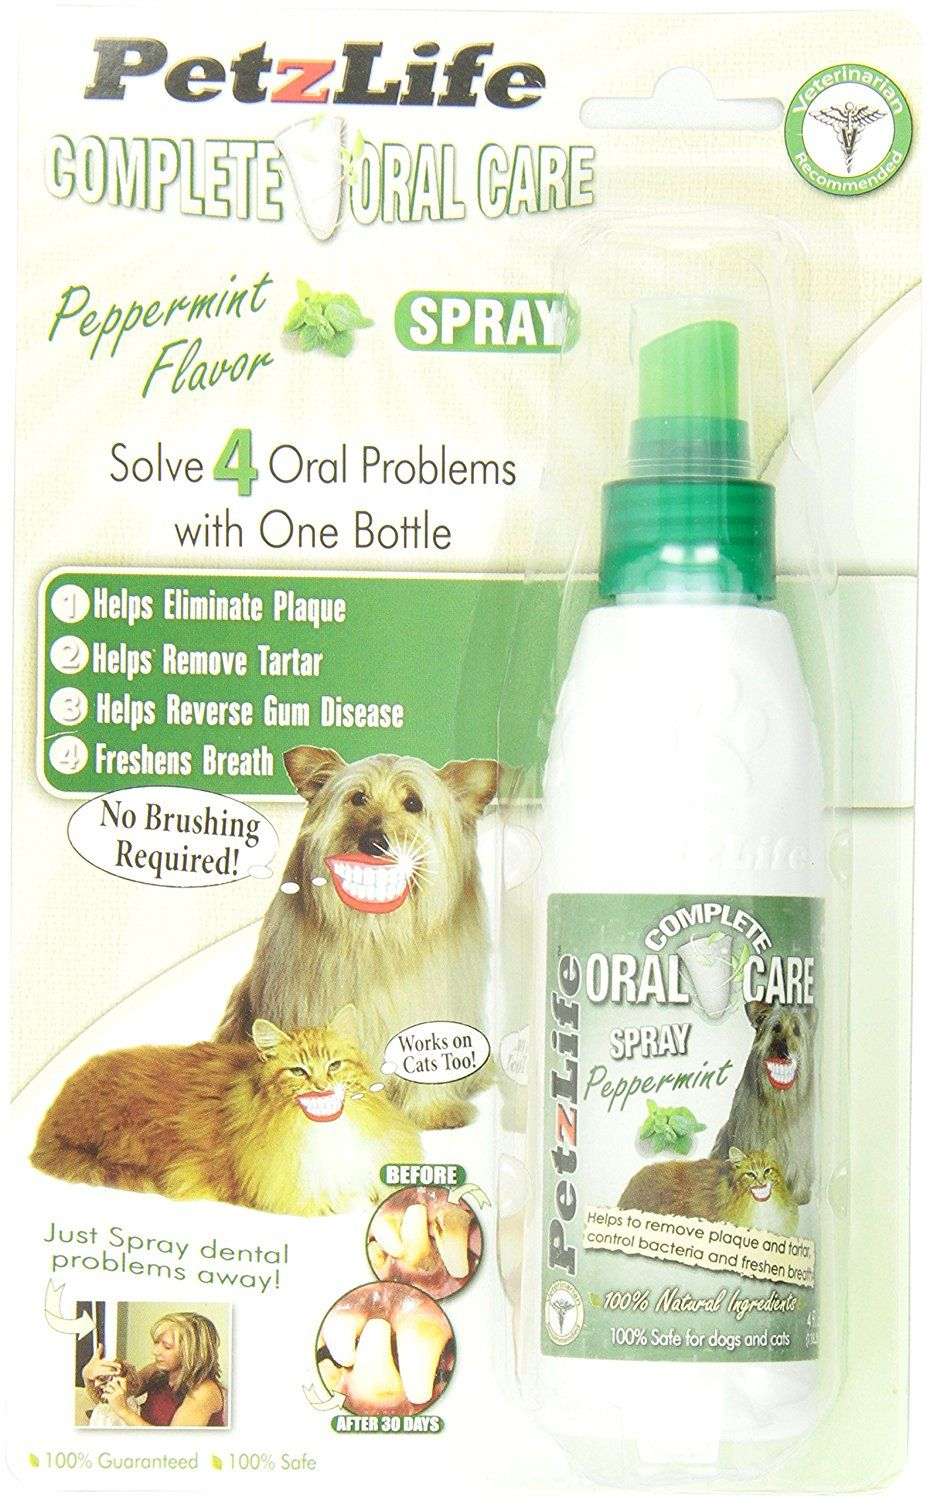 catZLIFE 891009 Complete Oral Care Spray Peppermint